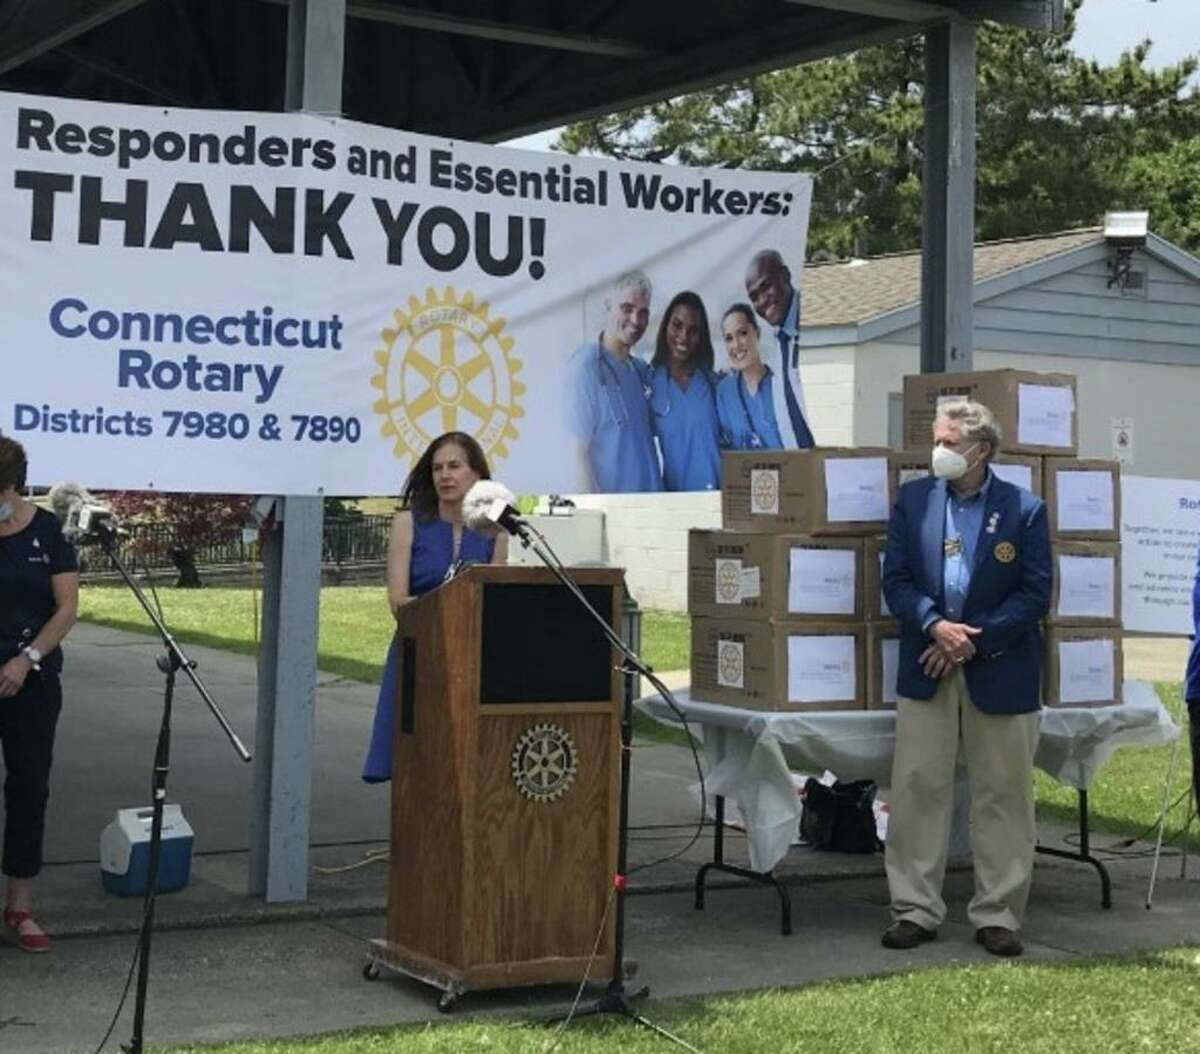 Lt. Gov. Susan Bysiewicz and Trish Pearson from Orange Rotary talk about CT Rotary's involvement in helping out during the COVID-19 pandemic.